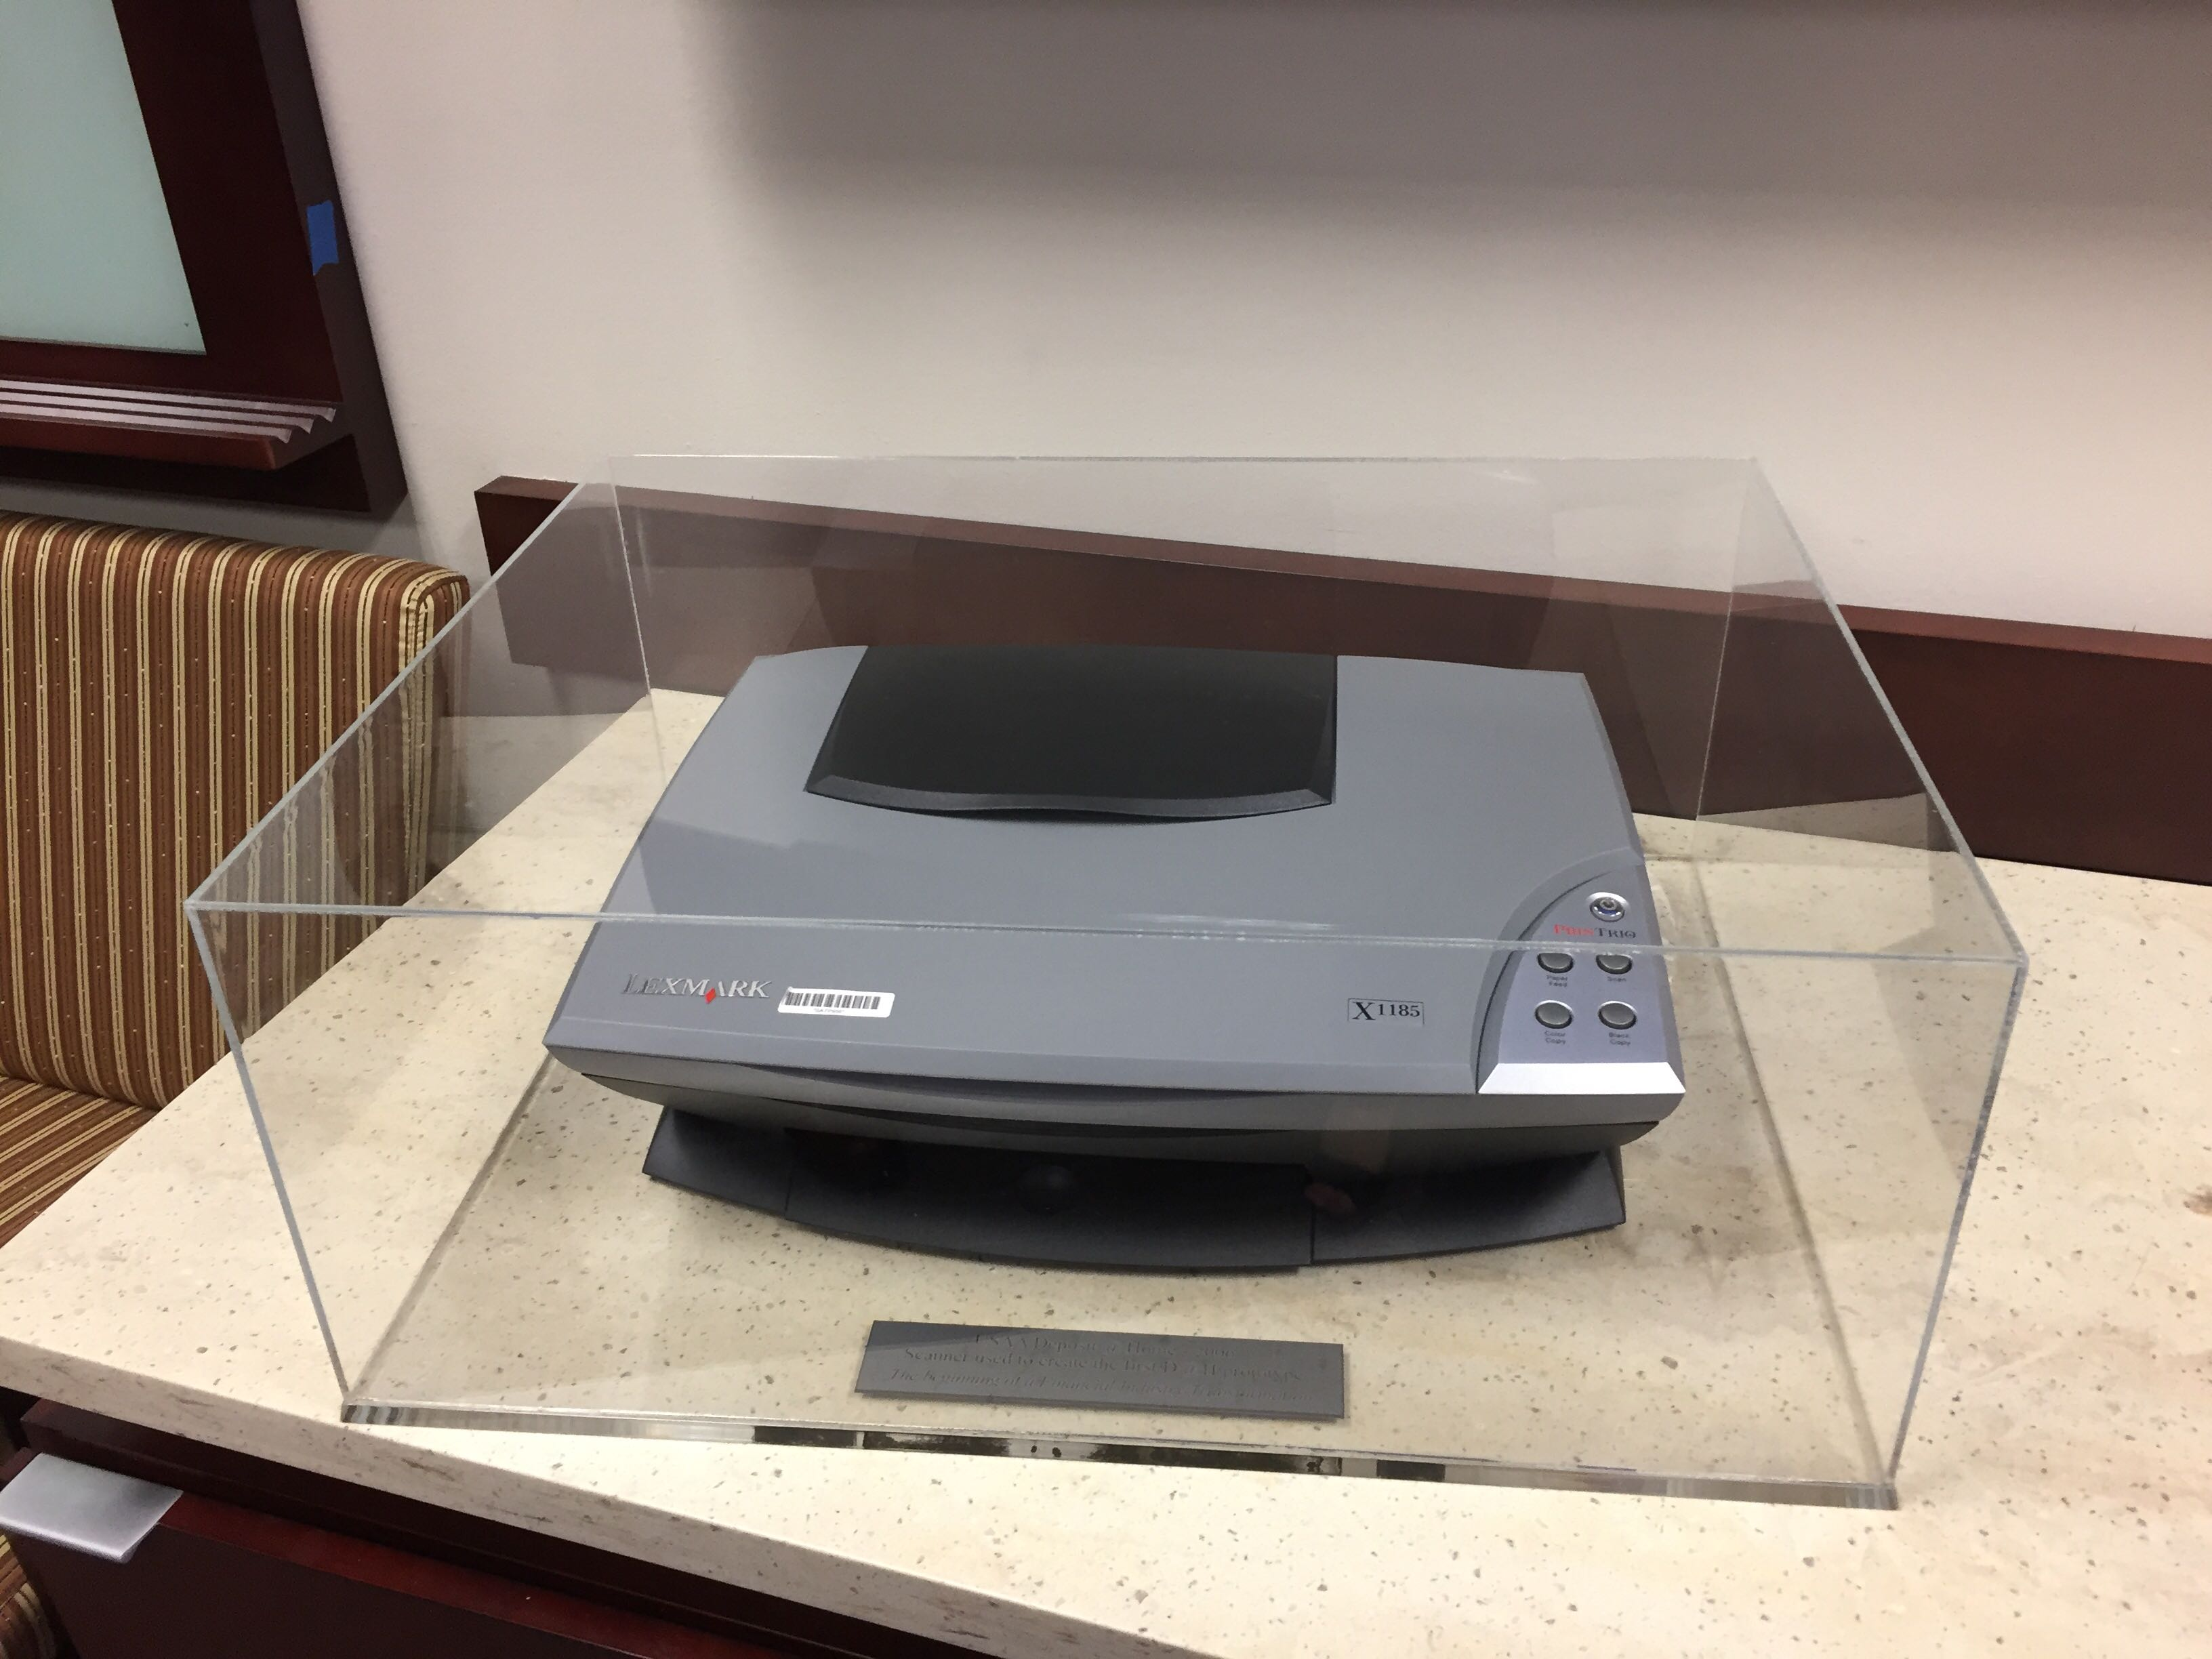 Original scanner used as a prototype of the groundbreaking technology